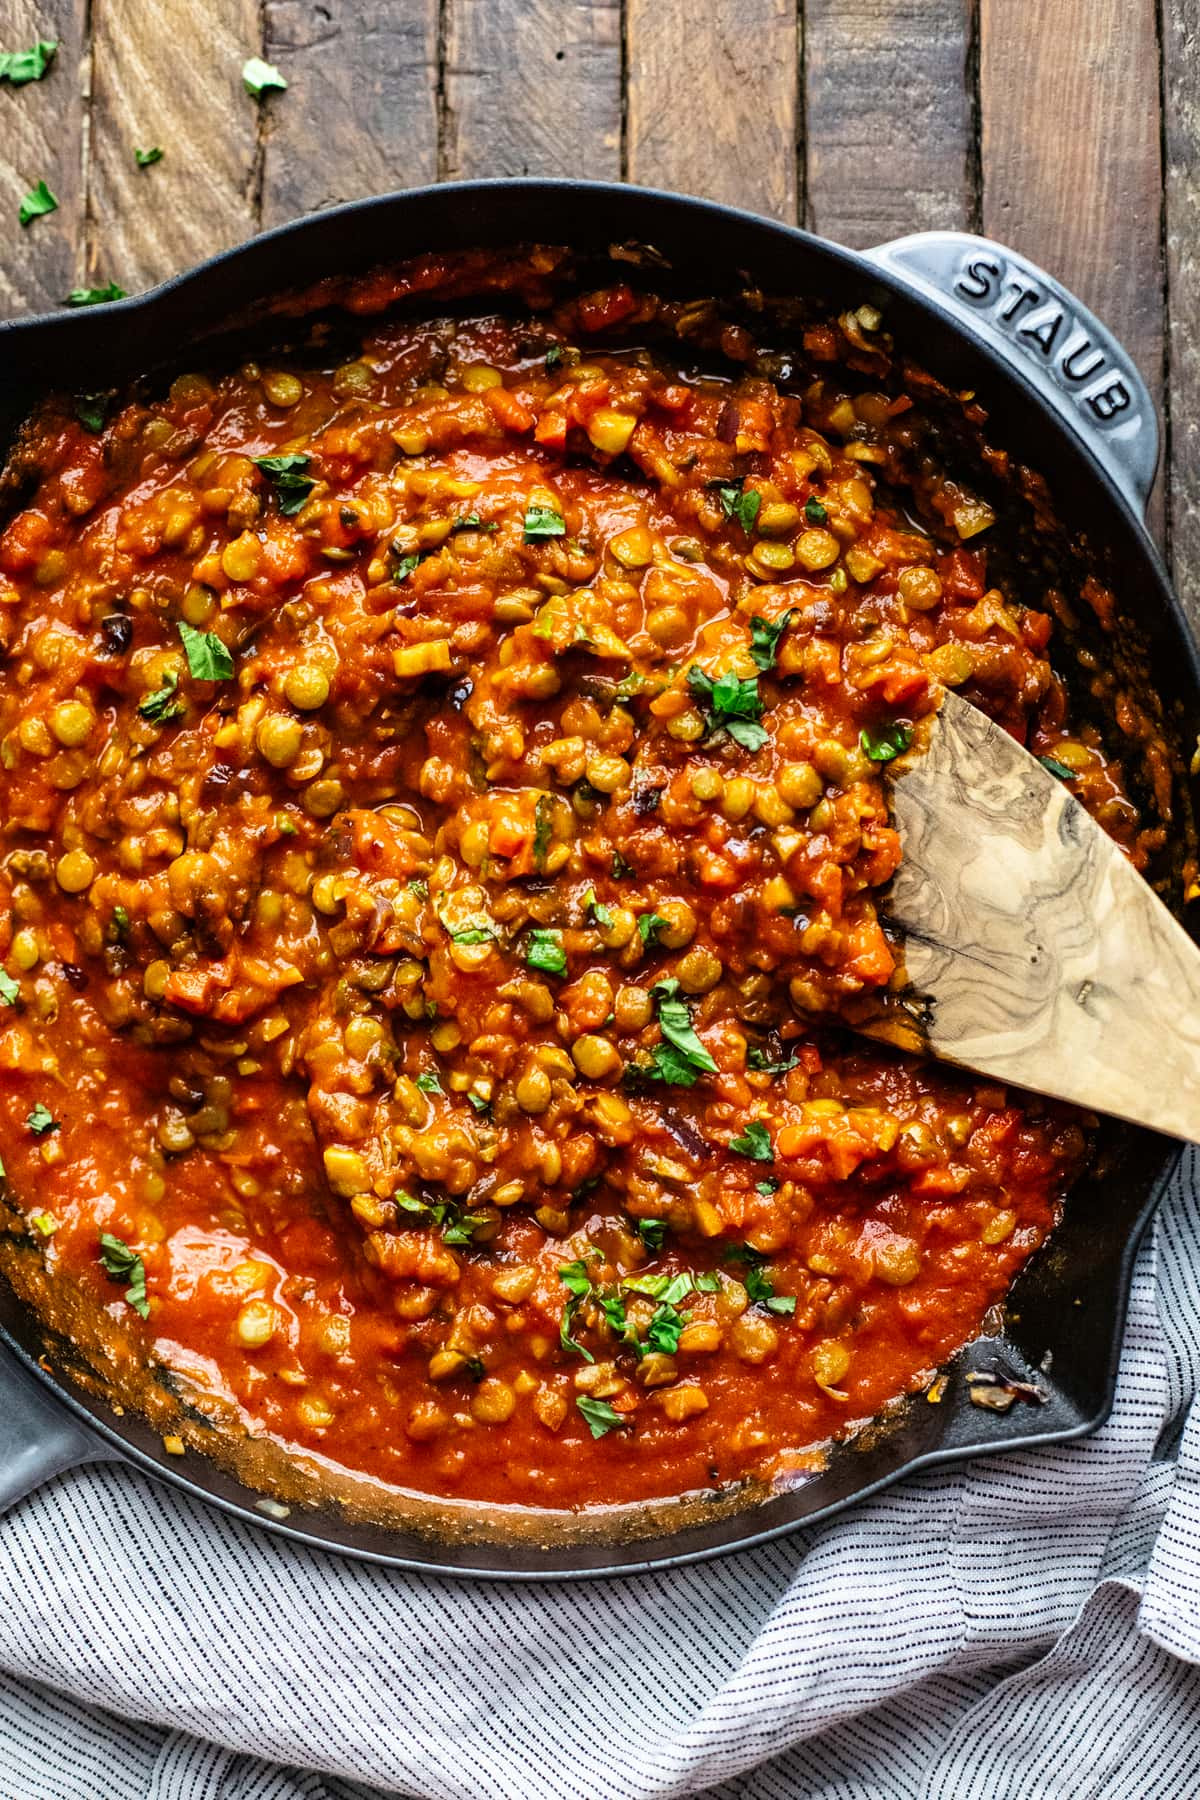 A cast iron skillet with red lentil bolognese sauce in it with wooden spoon.